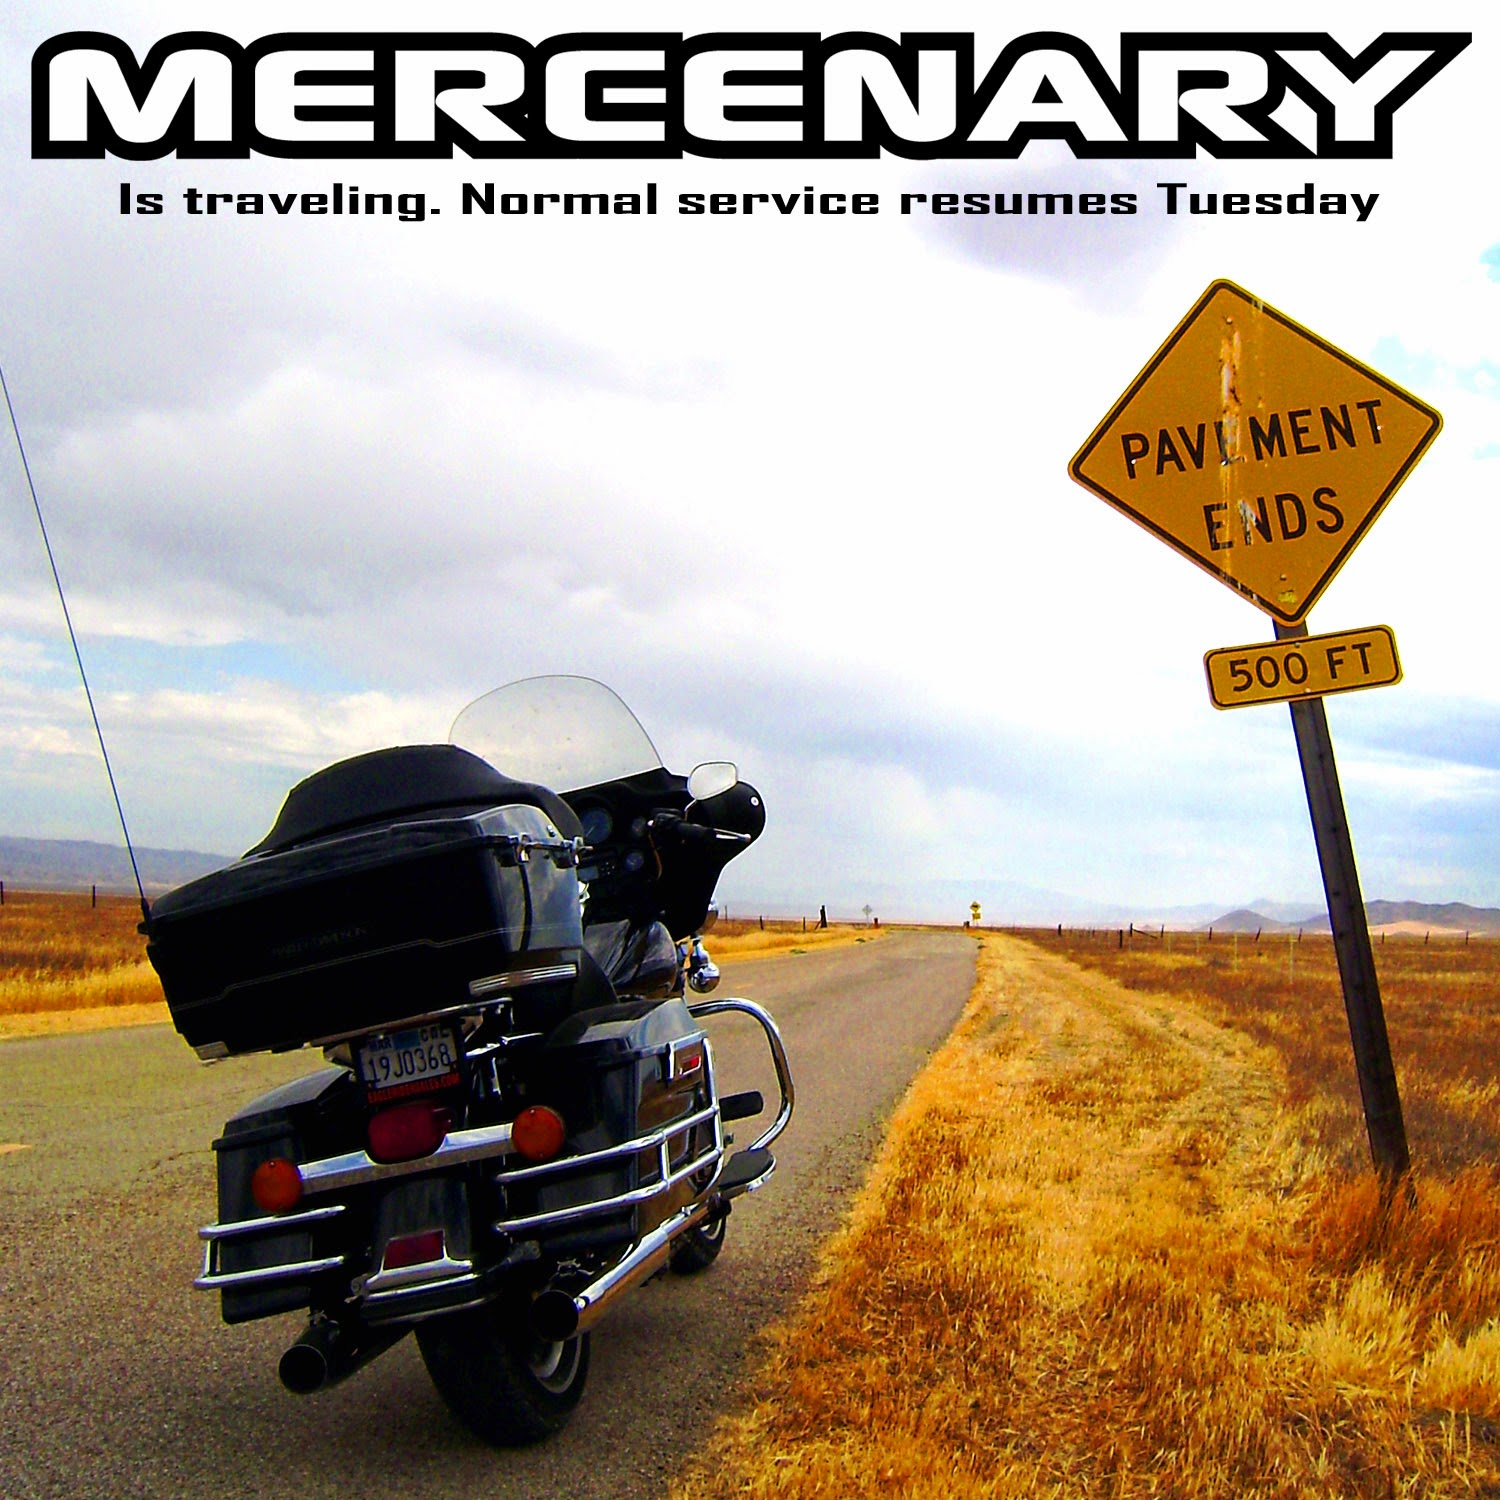 Mercenary Is Traveling